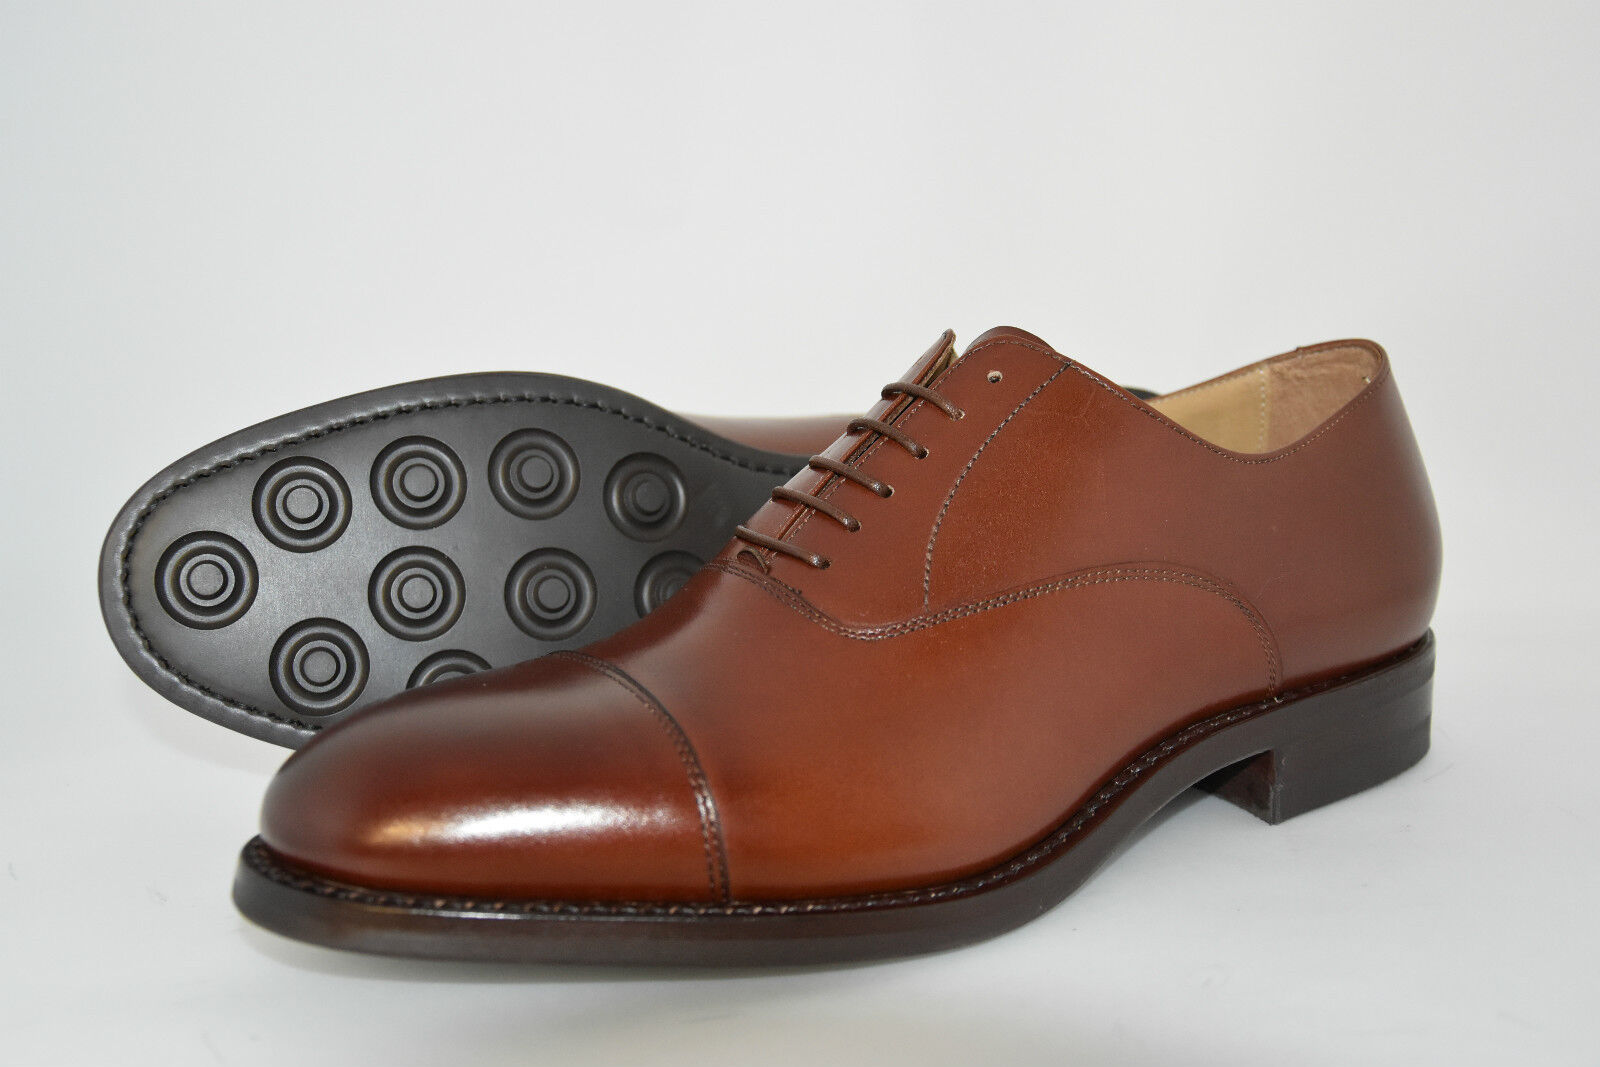 Monsieur Madame MAN-8eu-9usa-OXFORD CAPTOE-COGNAC CALF-VITELLO MARRONE-DAINITE+LEATHER d'année SOLE Le plus commode Solde de fin d'année MARRONE-DAINITE+LEATHER TempéraHommes t britannique dd045e